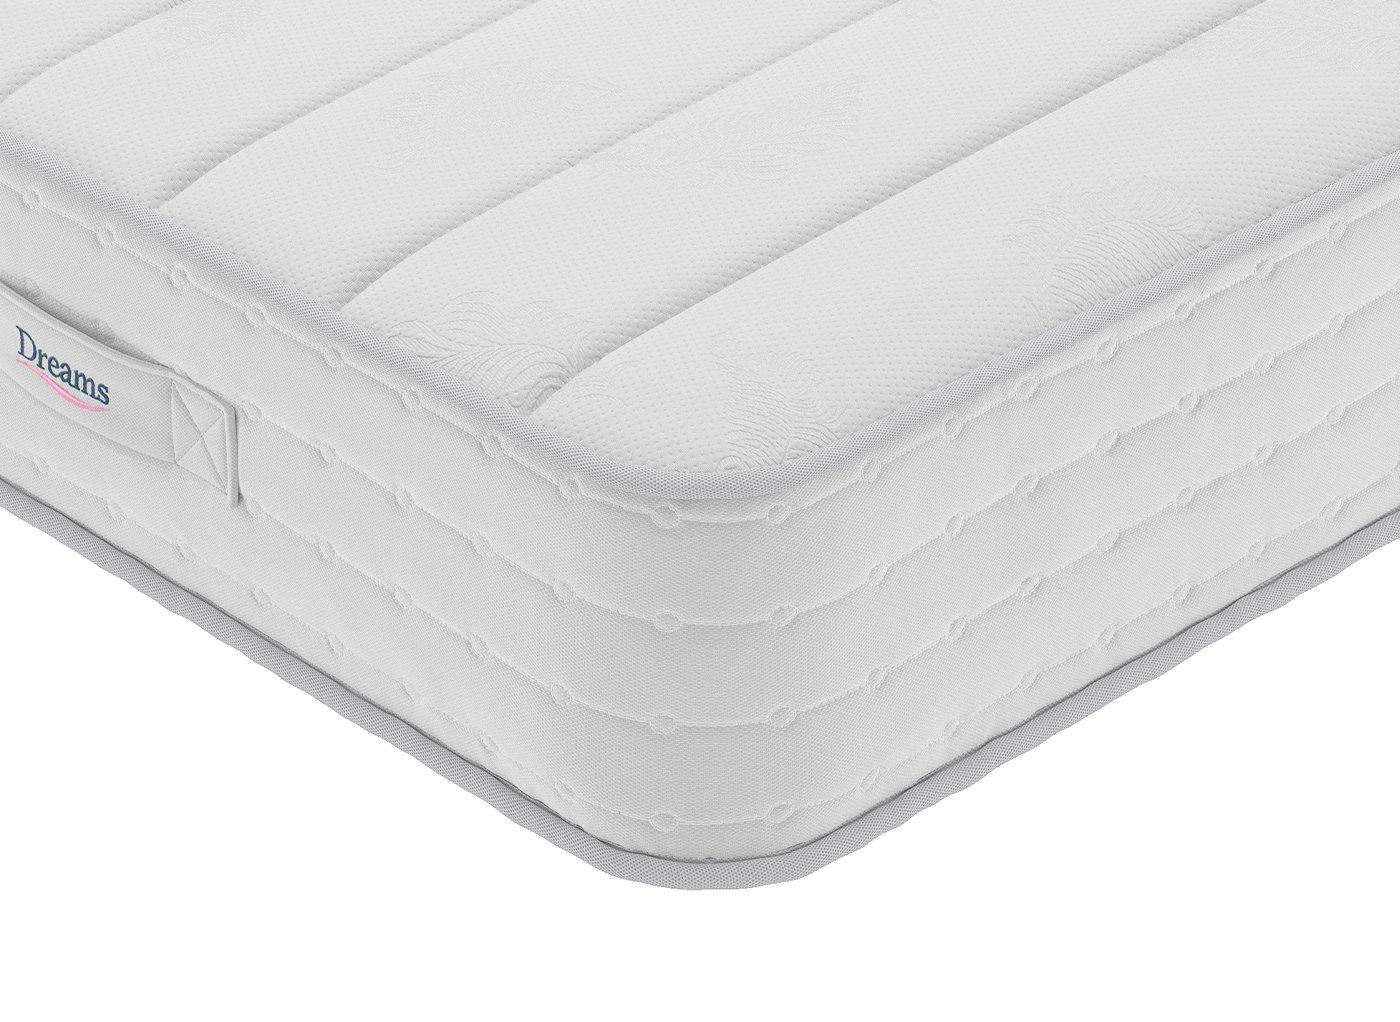 Campbell Pocket Sprung Mattress - Medium 3'0 Single